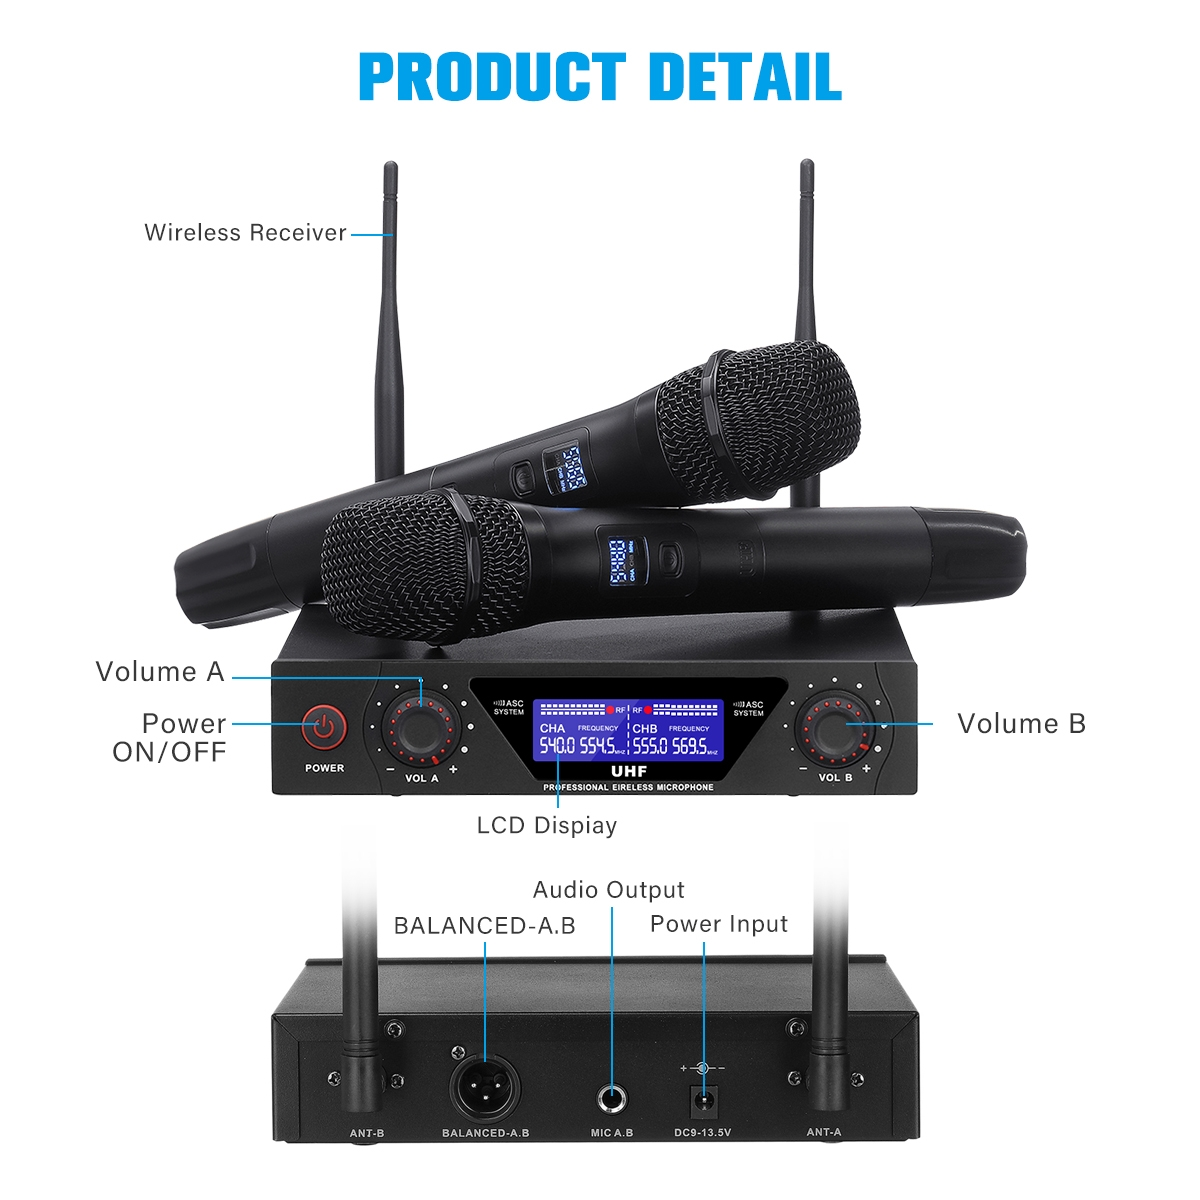 NASUM Wireless Microphone Karaoke Wireless Microphone System UHF Professional Handheld Wireless Mic Set